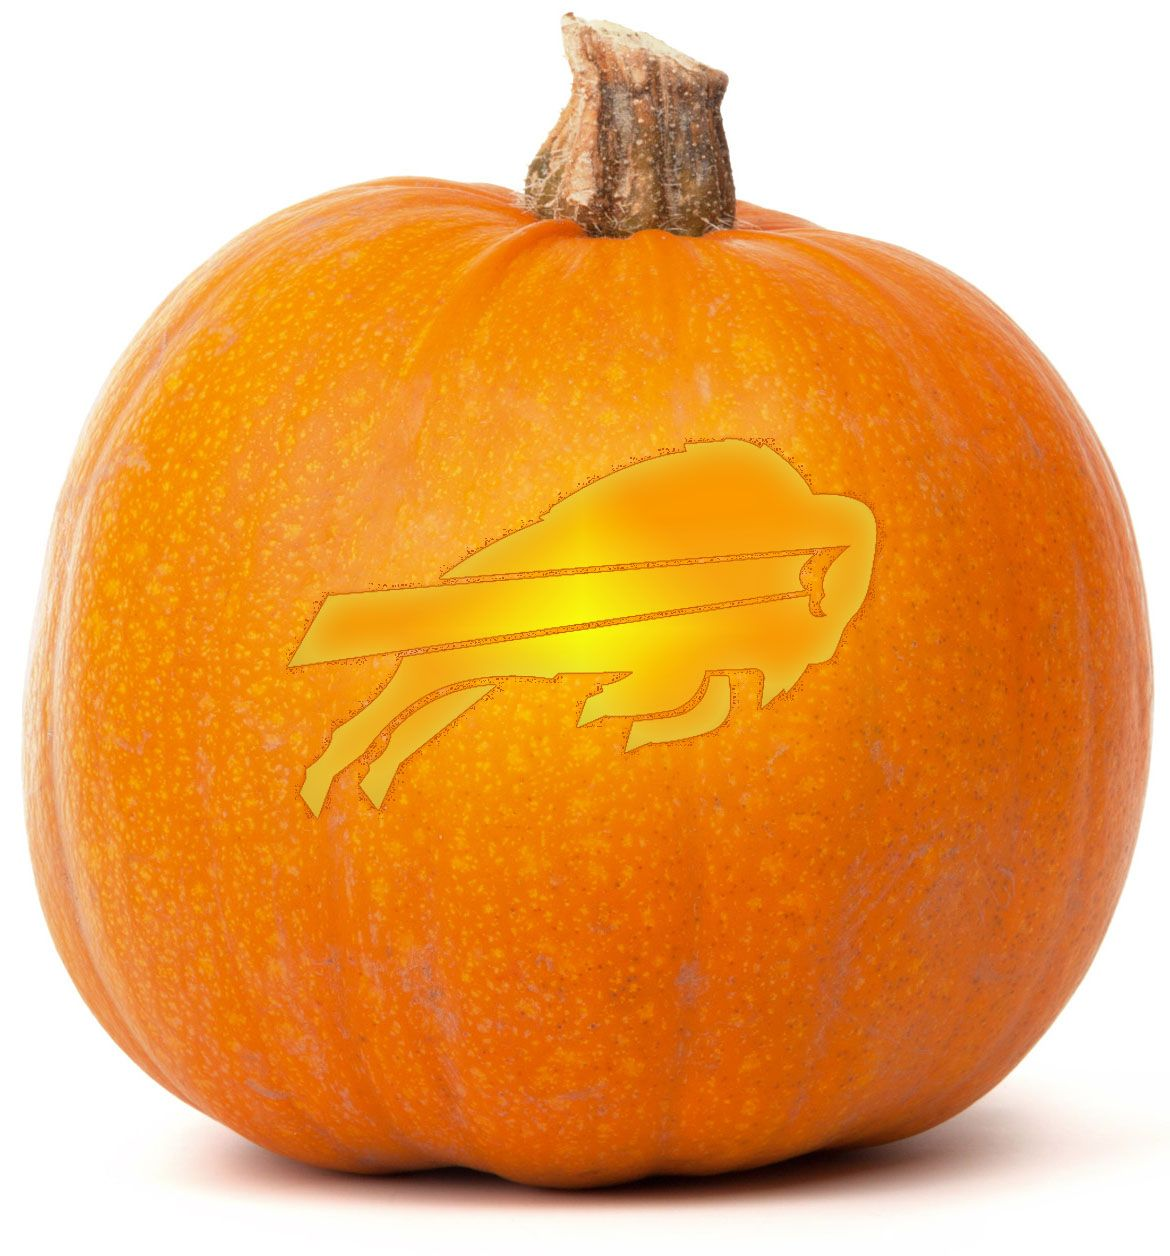 Download Our Free Buffalo Bills Pumpkin Carving Template Browse